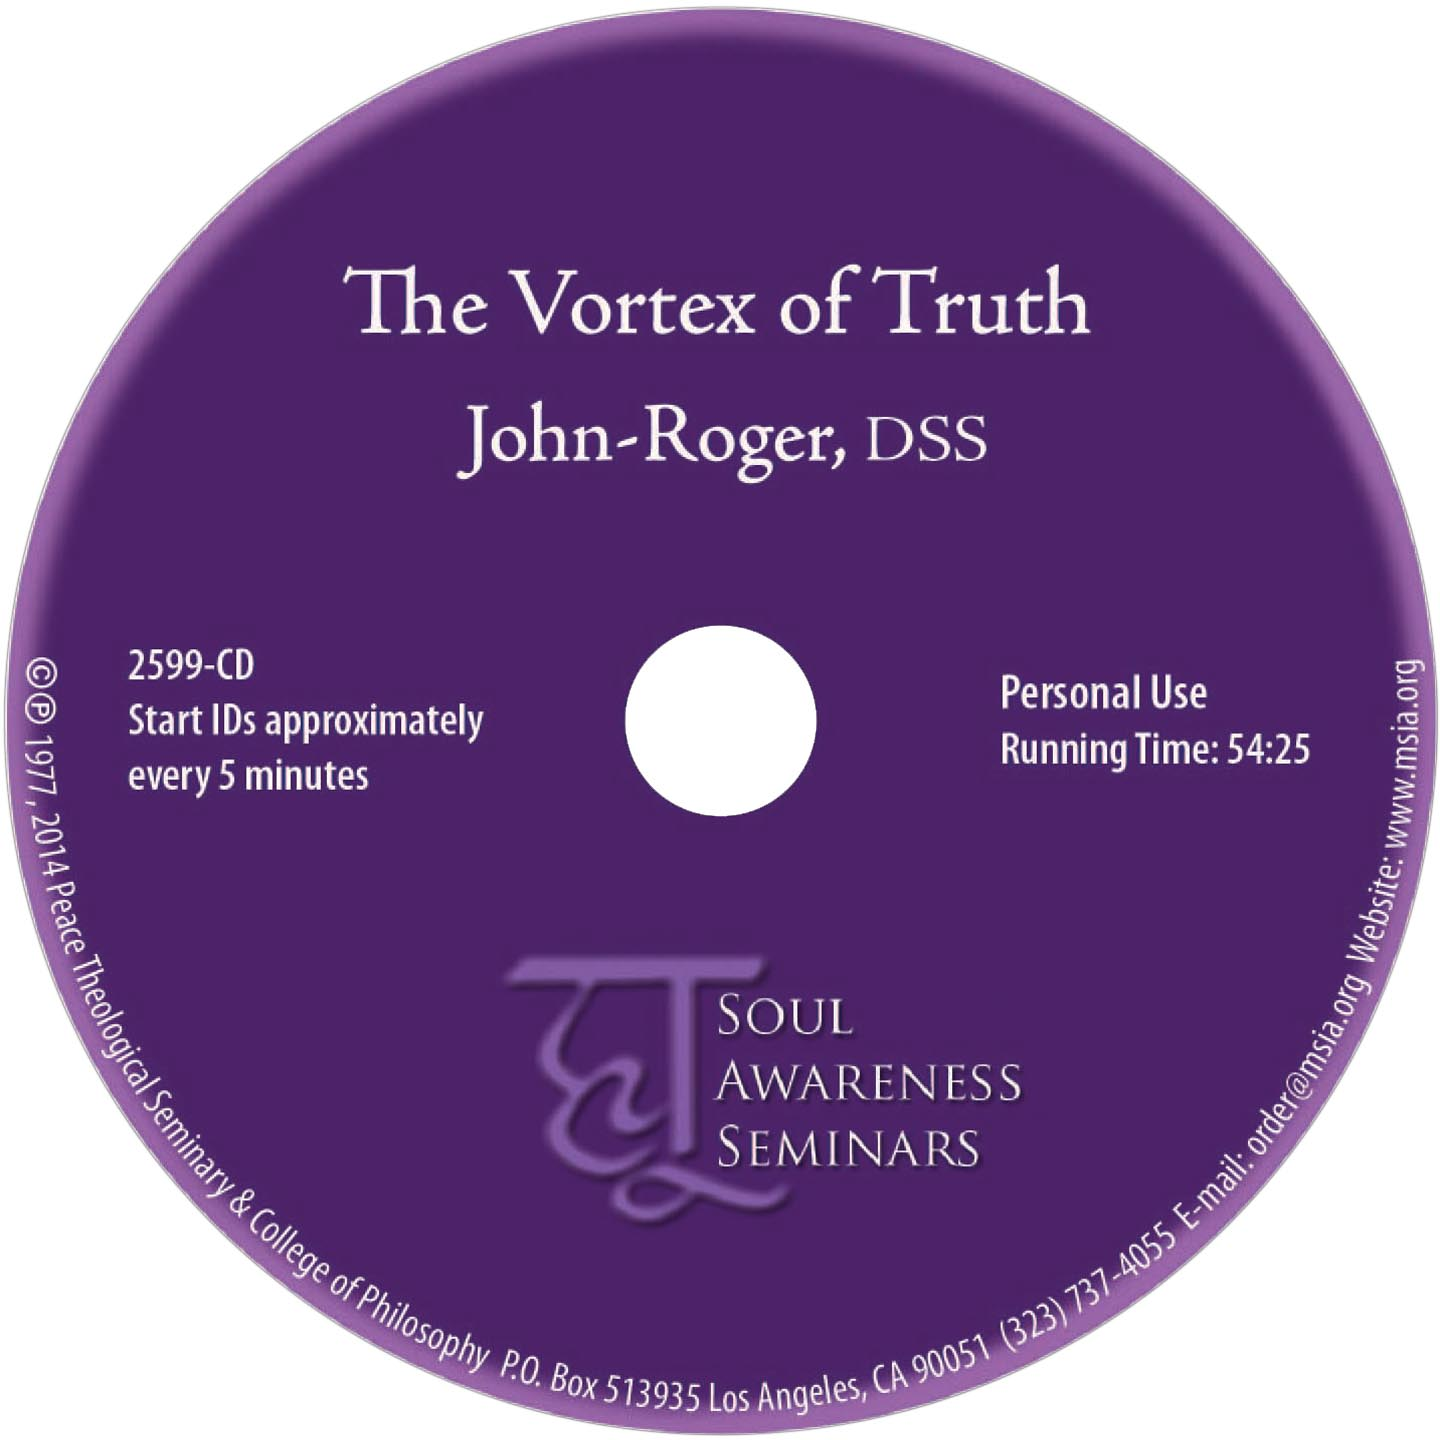 The Vortex of Truth CD